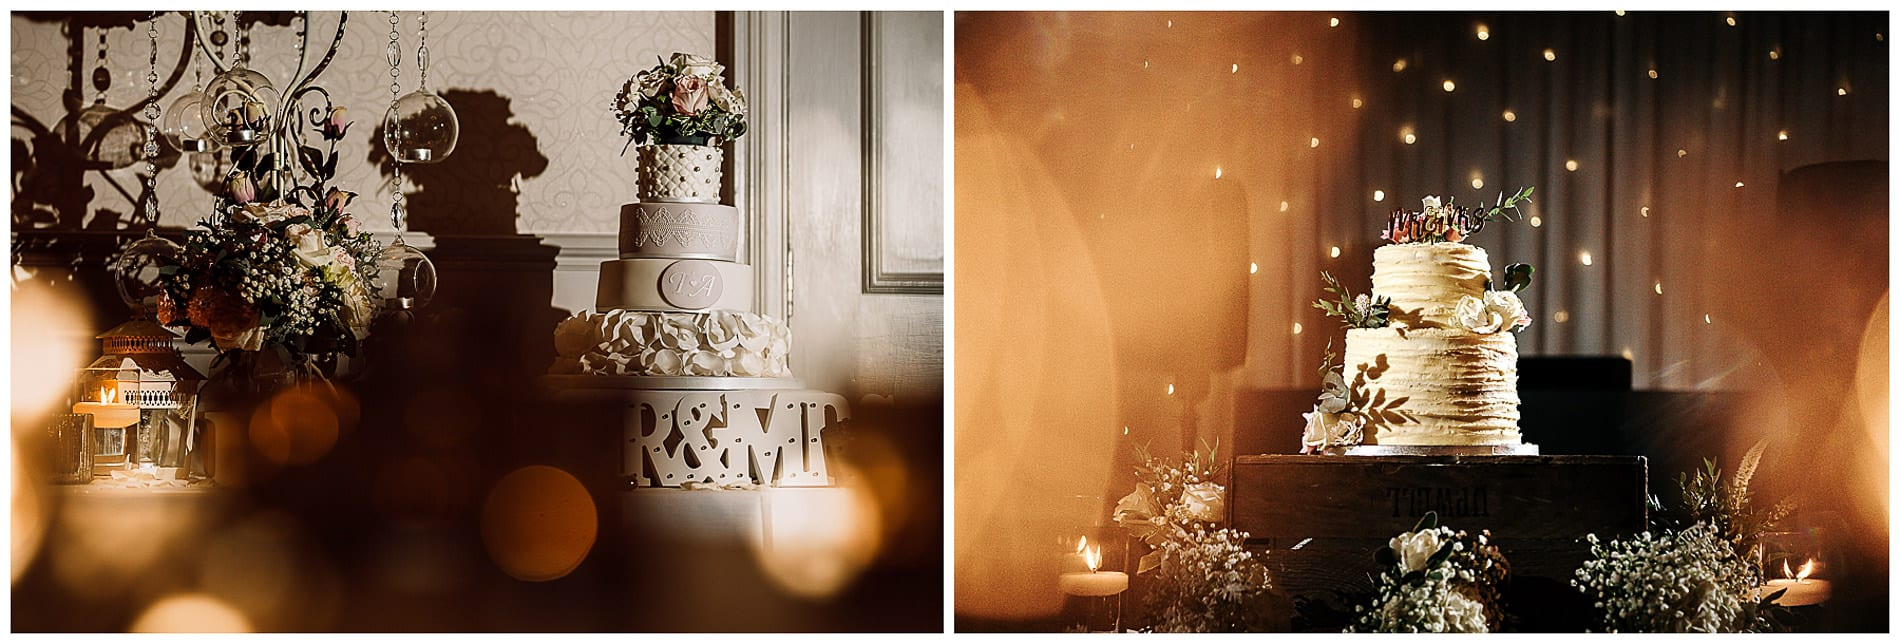 Two wedding cakes at Mottram Hall